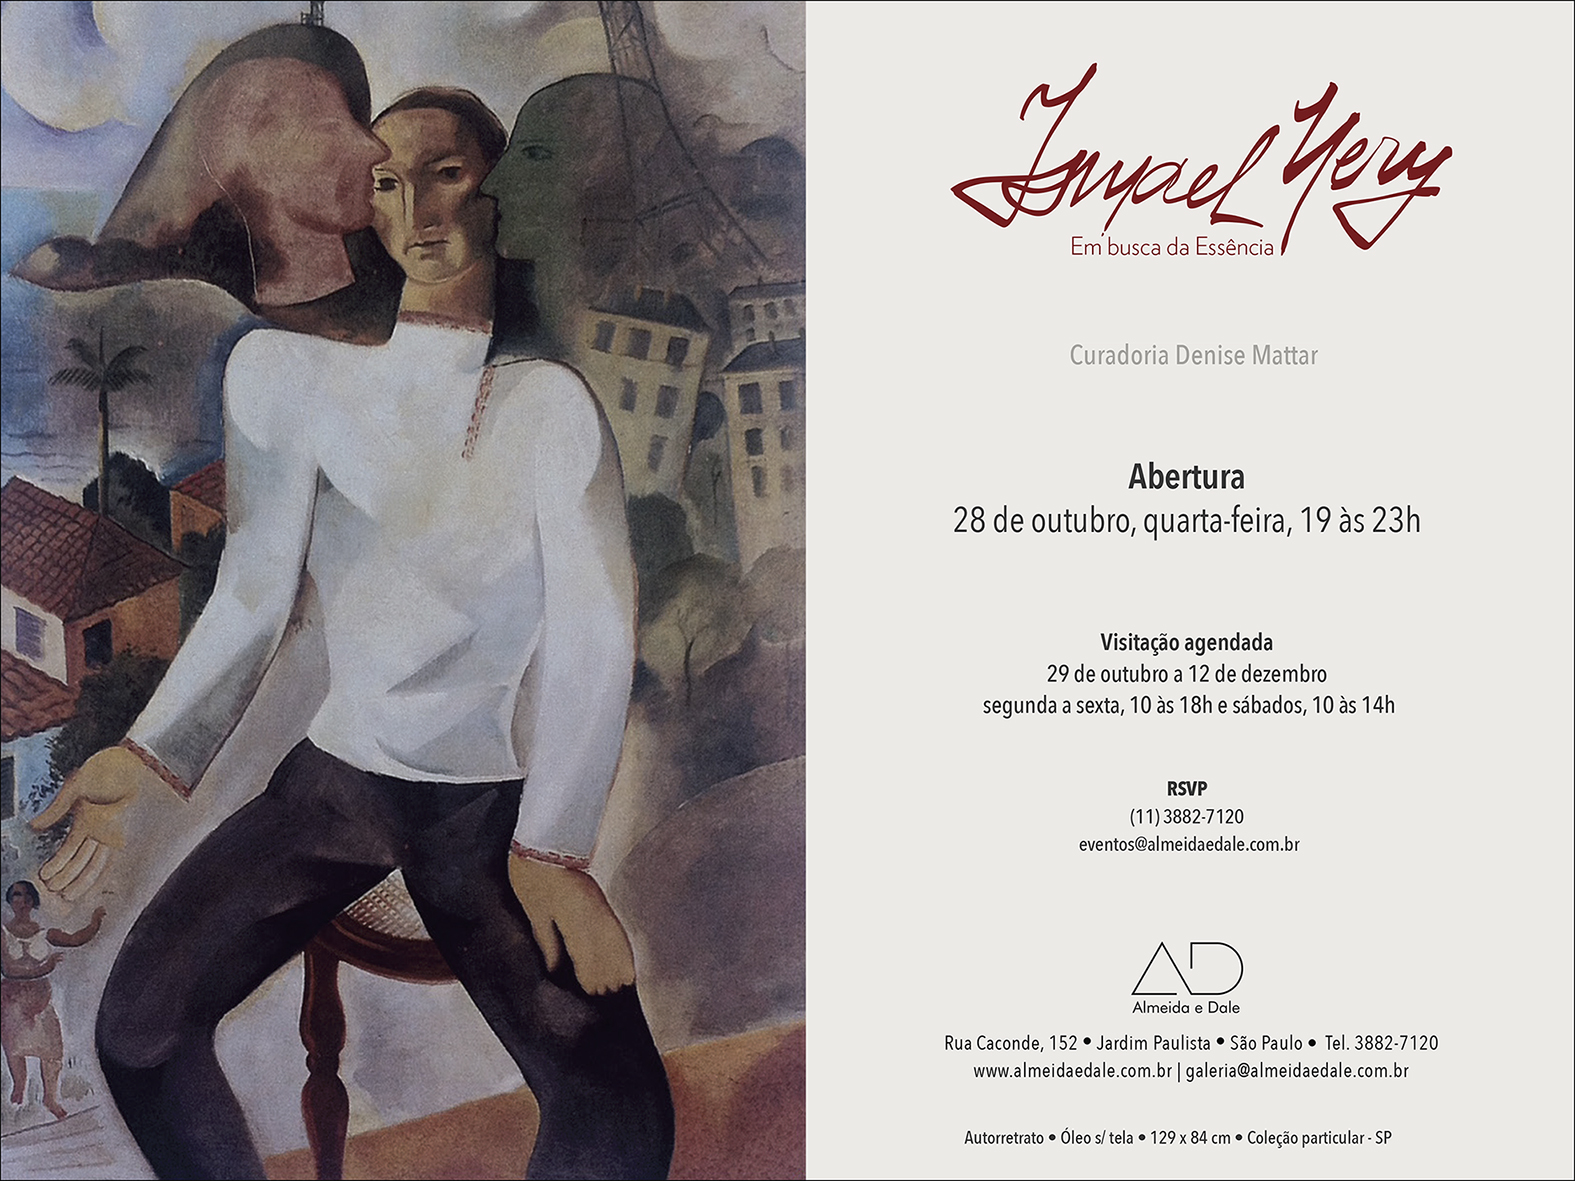 Ismael Nery Save the date.indd